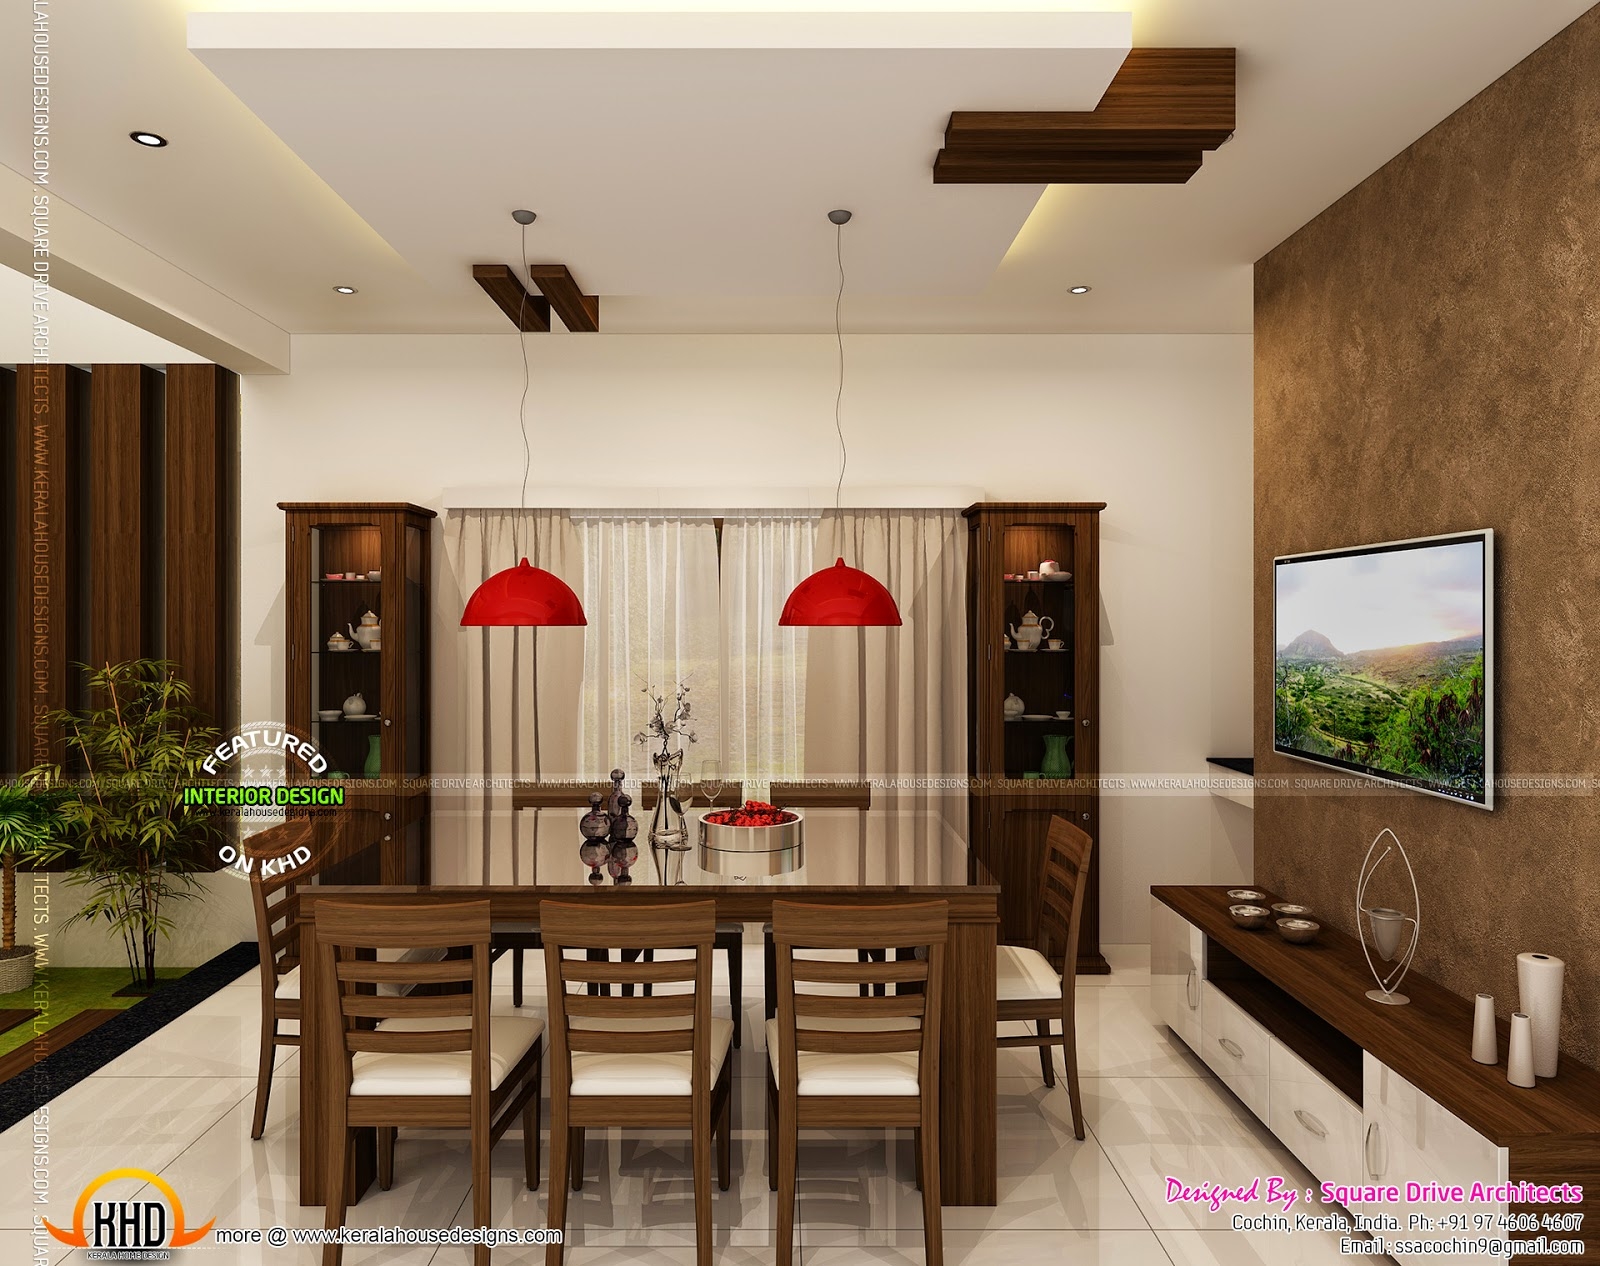 Luxury interior designs in kerala keralahousedesigns for Picture of interior designs of house